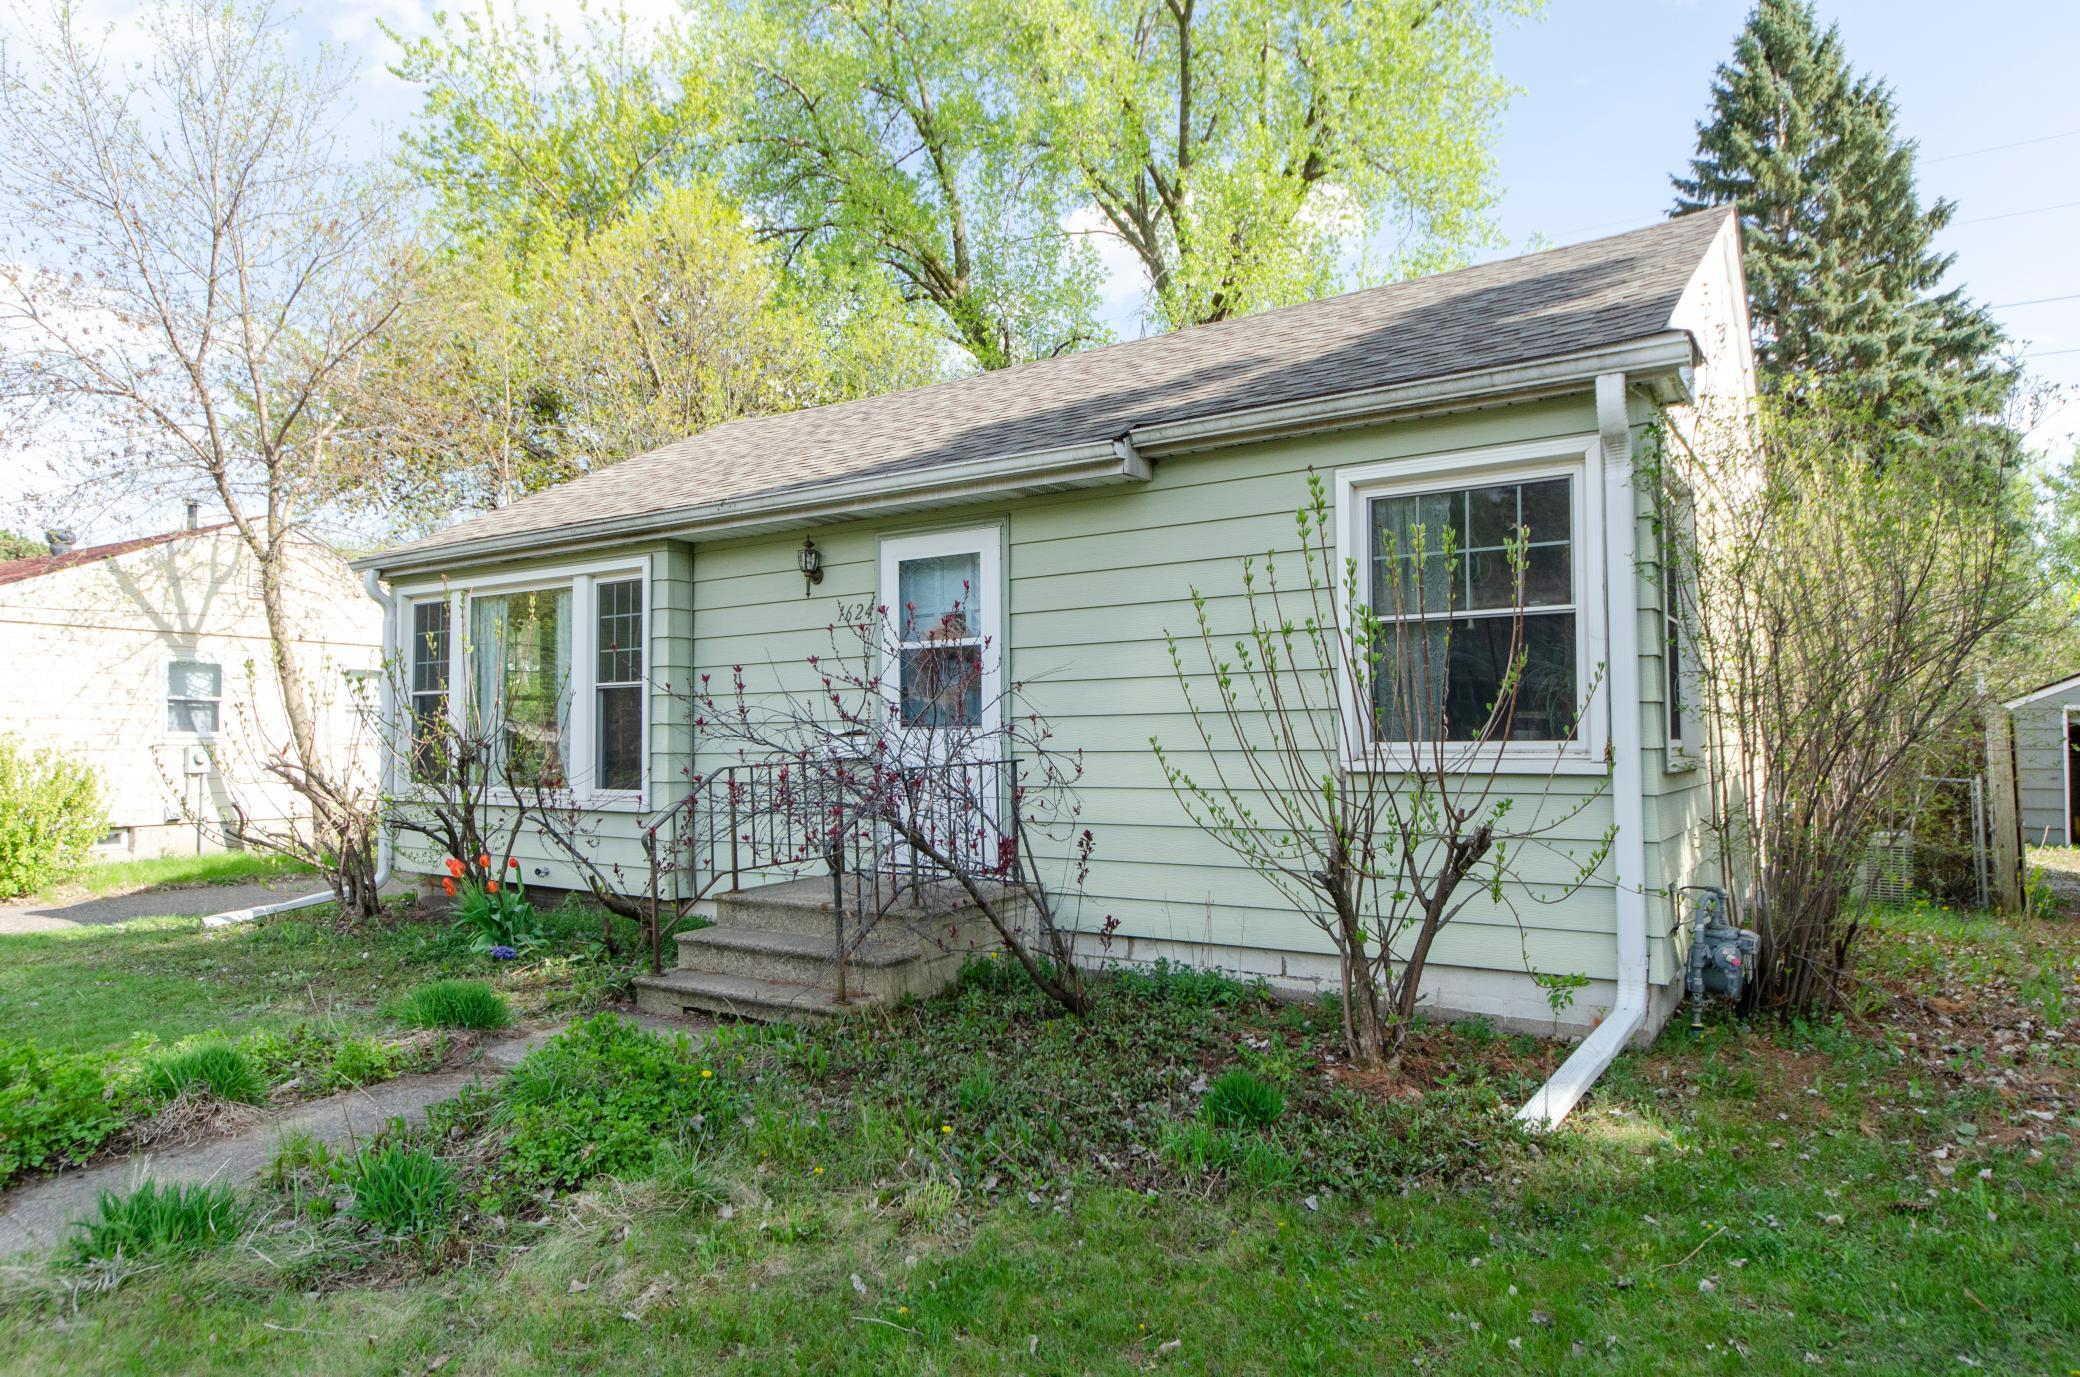 Enjoy this cute 1950's rambler in the Waite Park neighborhood of Northeast Minneapolis! It has charm, warmth, and great vibes! Updates include: Roof (2020), Duct Work/Central Air (2020), All plumbing updated (2018), Sump pump/Drain tile system (2020), Backsplash (2021), plus more! The basement is ready to be finished, and you can double the size of the home! Easily put another bed, bath, and family room and gain instant equity. Enjoy the backyard by the fire and the beautiful trees. It's very private and the lot is measure at .19 acres - come take a look!